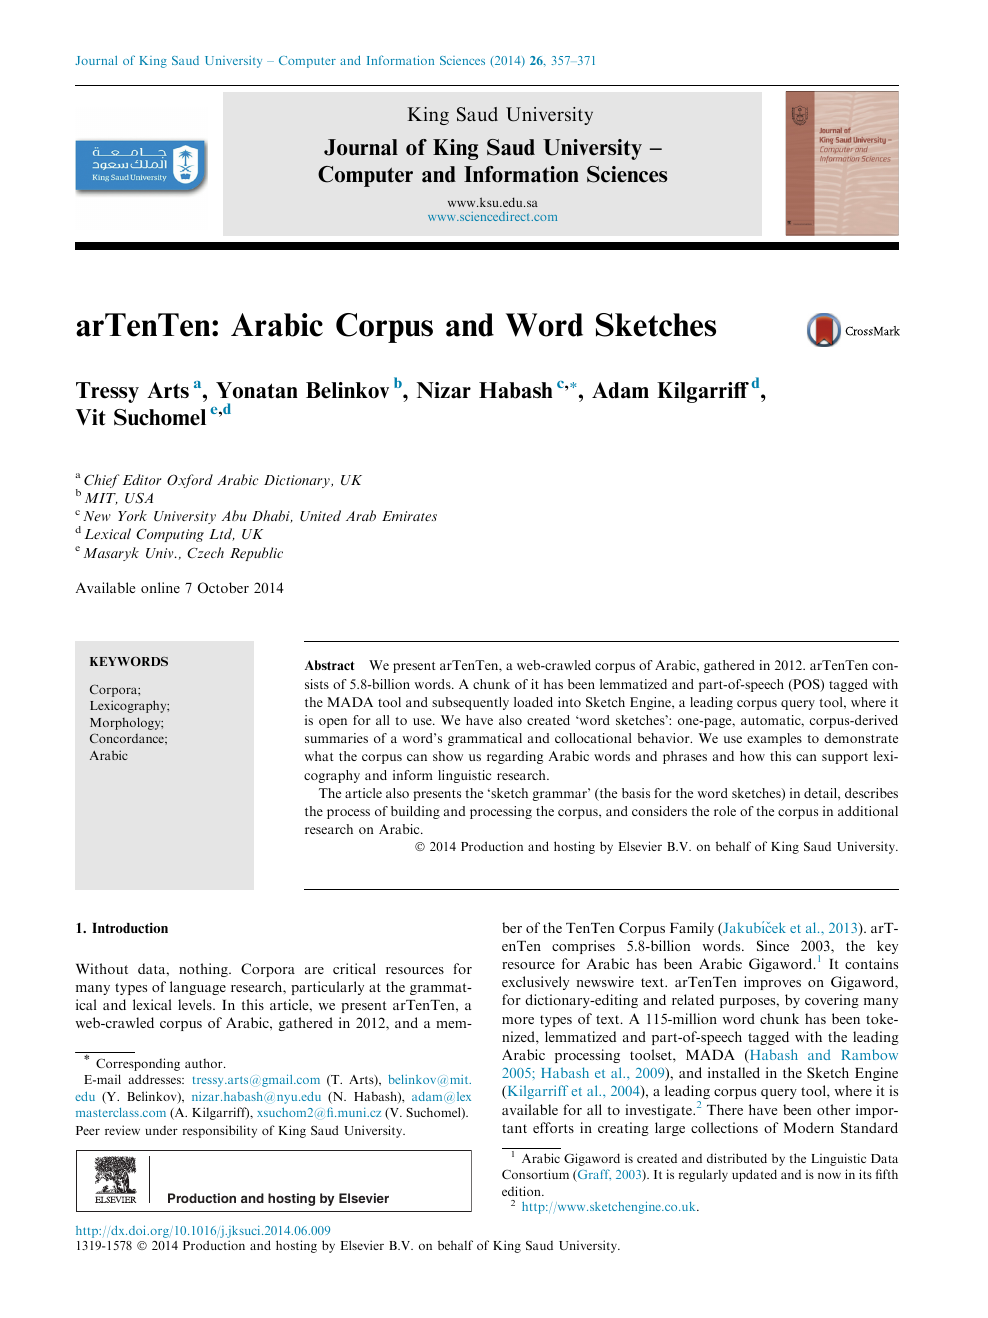 arTenTen: Arabic Corpus and Word Sketches – topic of research paper